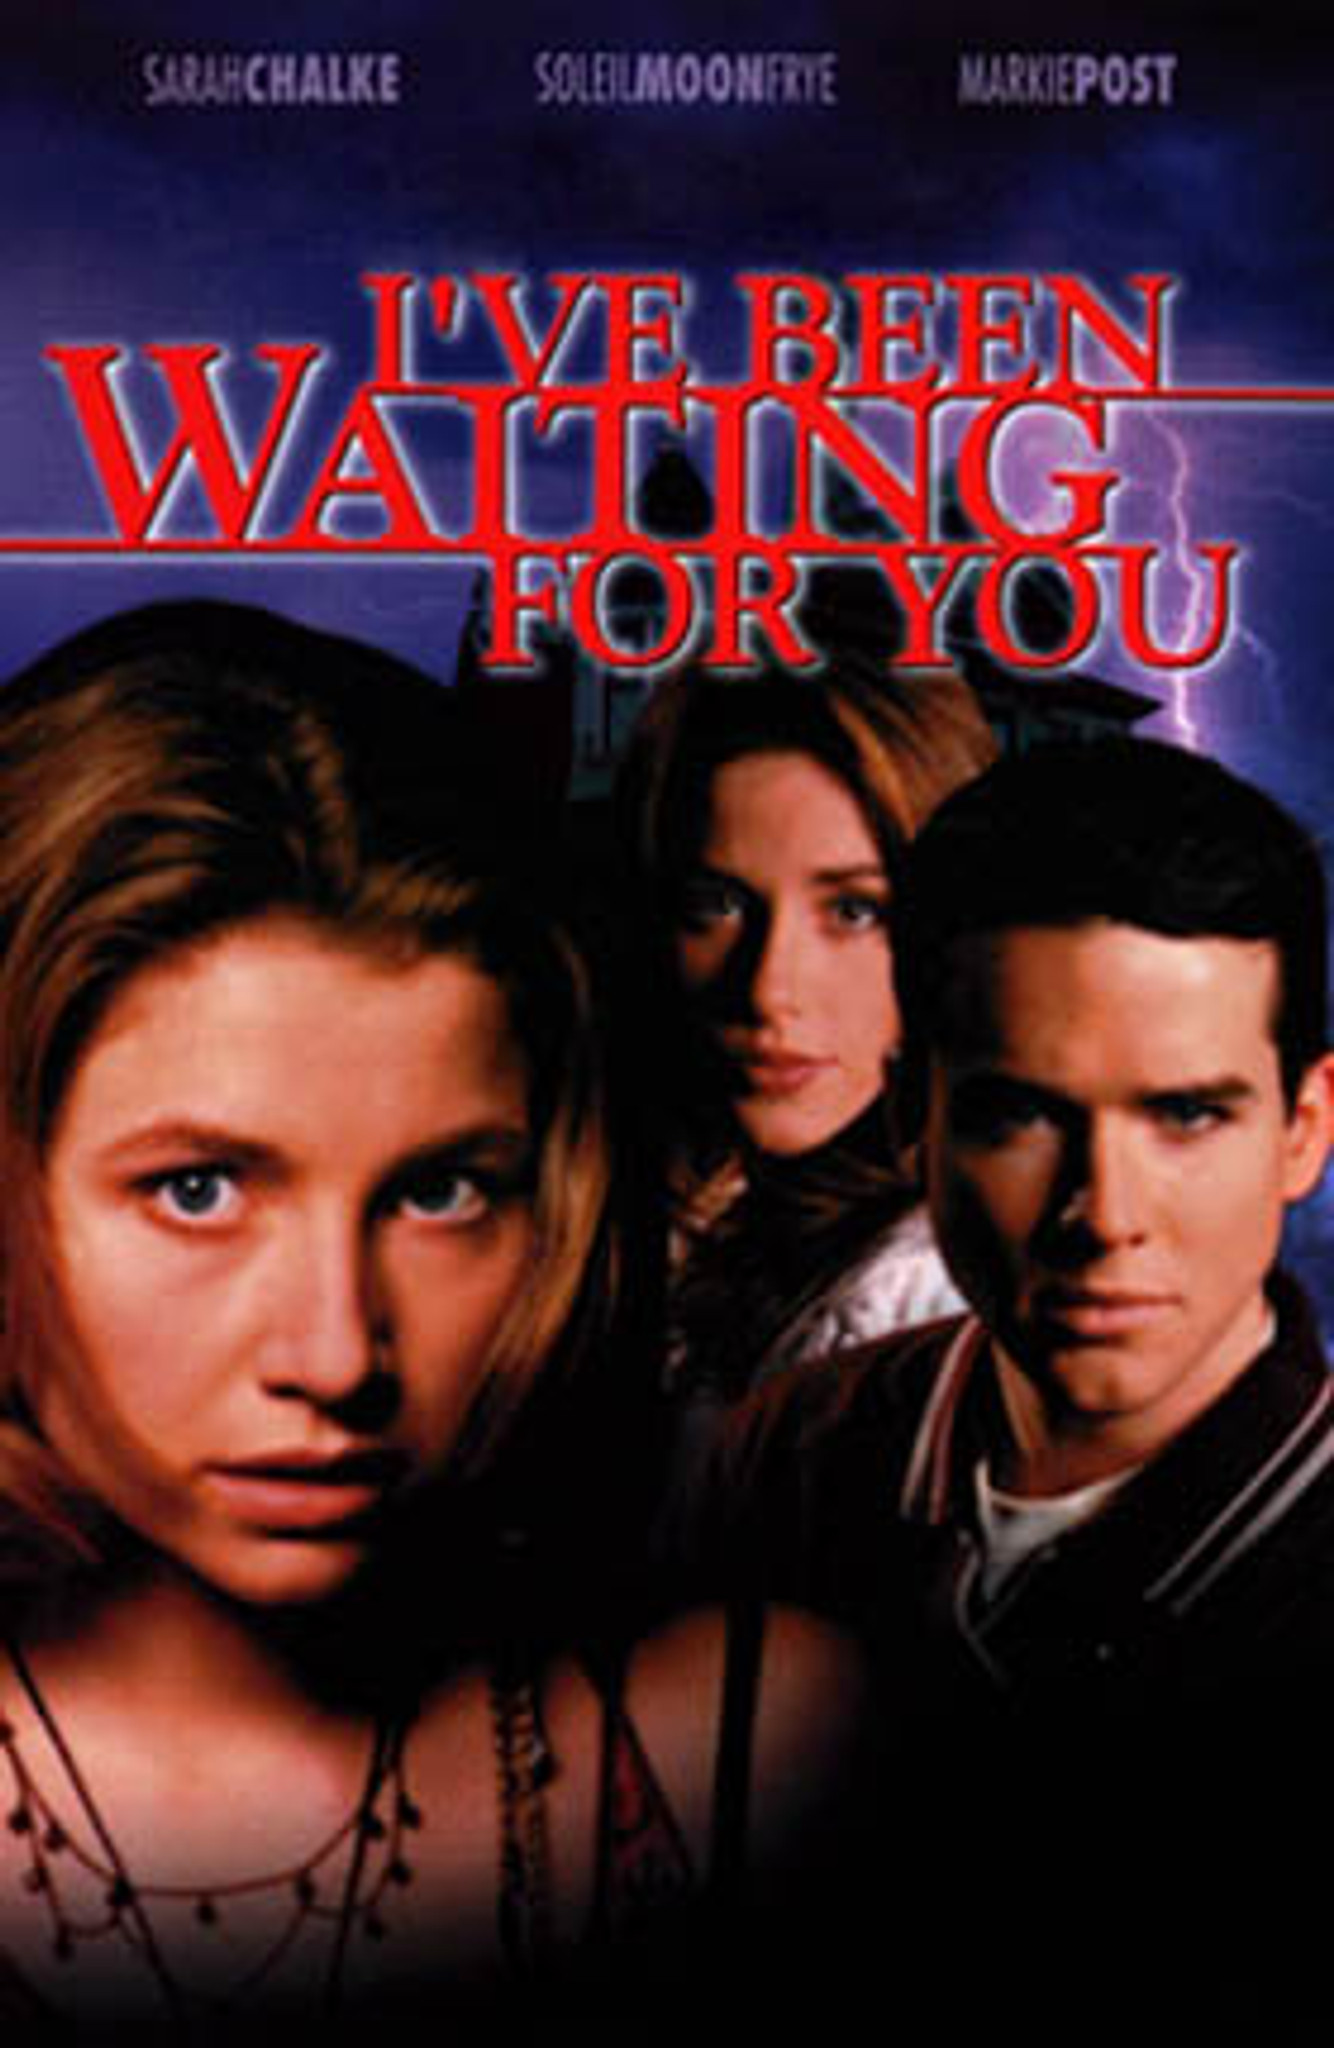 I've Been Waiting For You (1998) Dvd